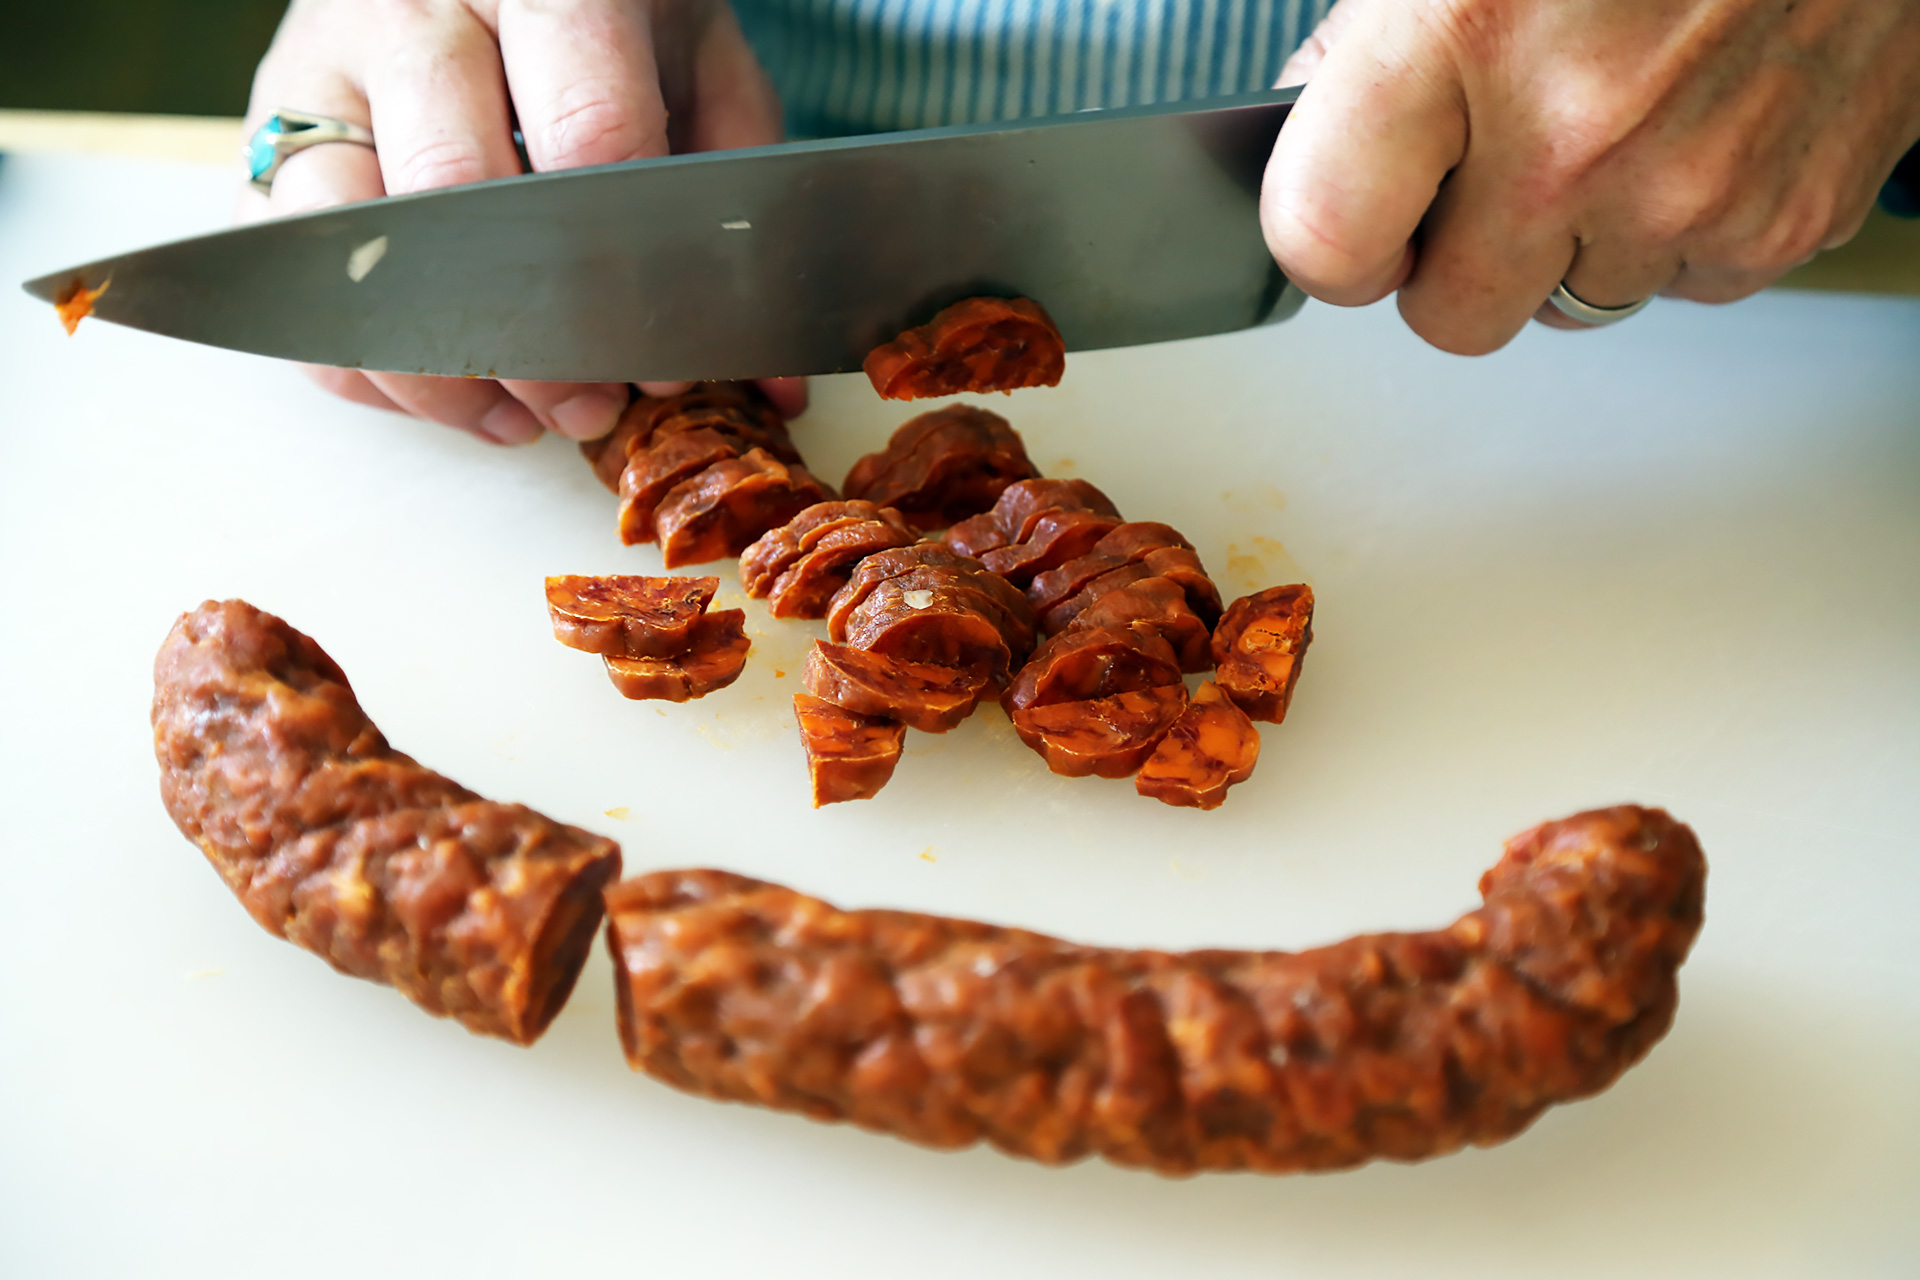 Prep 1/4 lb Spanish chorizo, halved or quartered lengthwise and sliced.